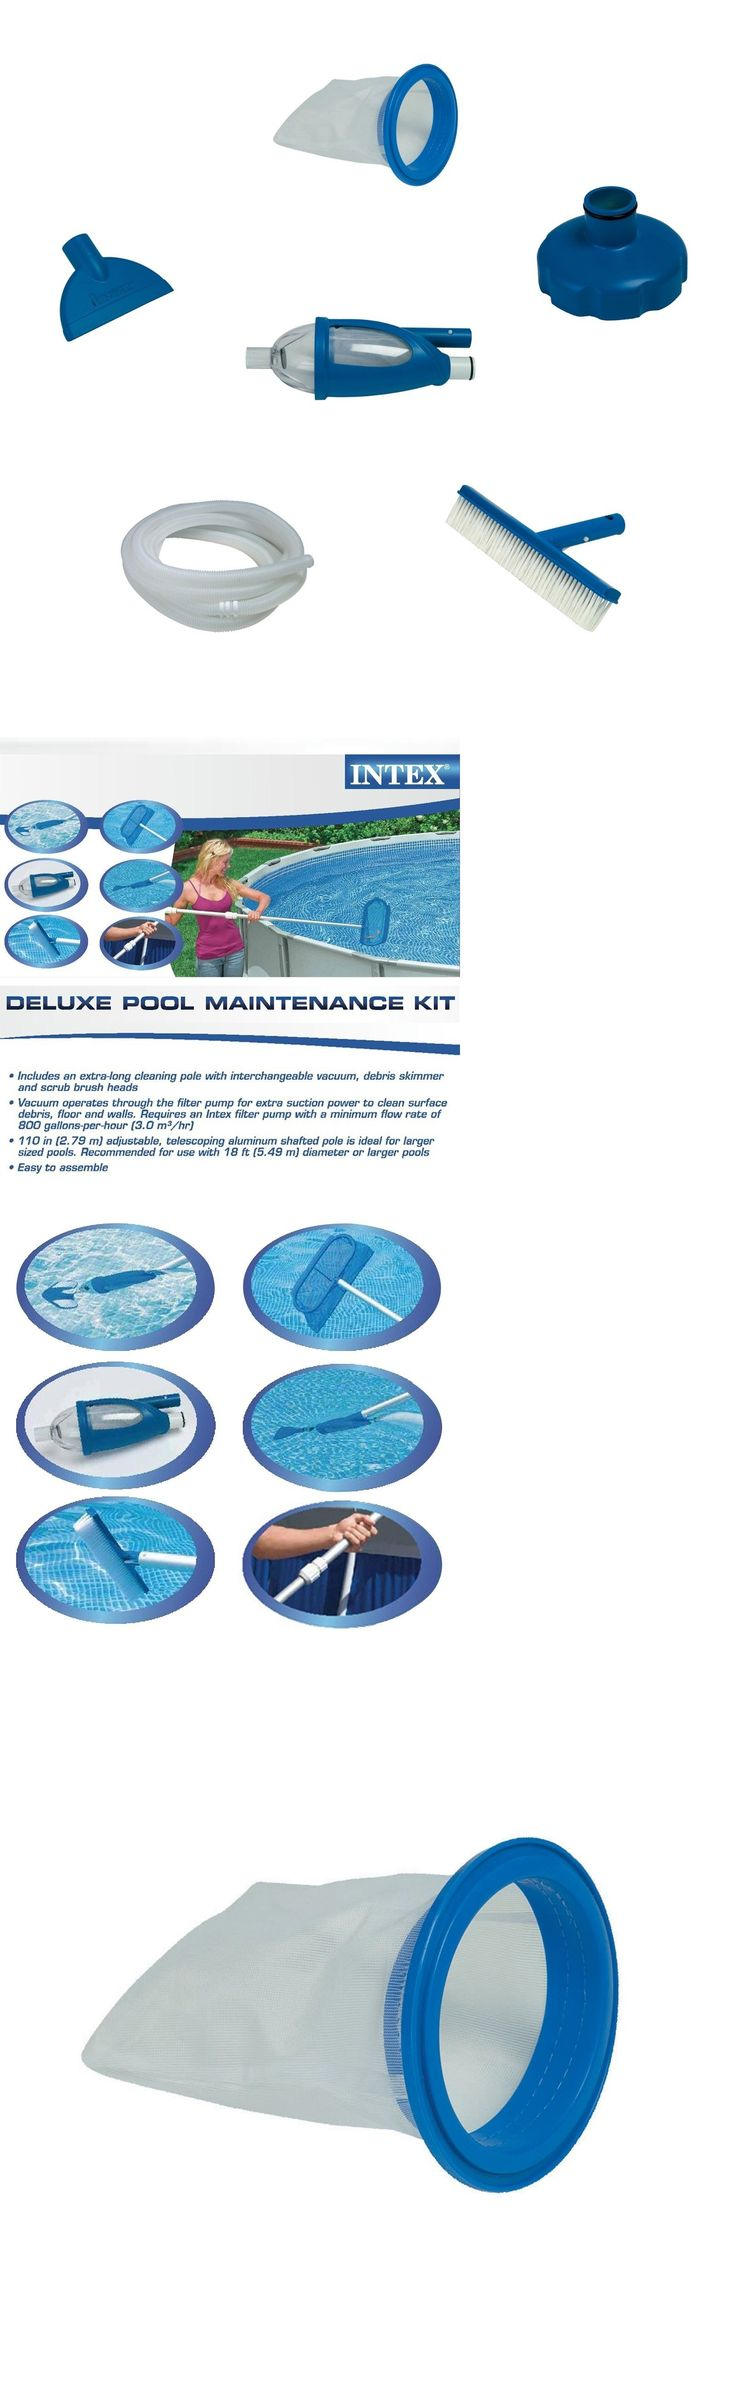 Other Pool Cleaning 181066: Pool Cleaning Maintenance Cleaners Accessories Supplies Kit Above Ground Vacuum -> BUY IT NOW ONLY: $52.31 on eBay!